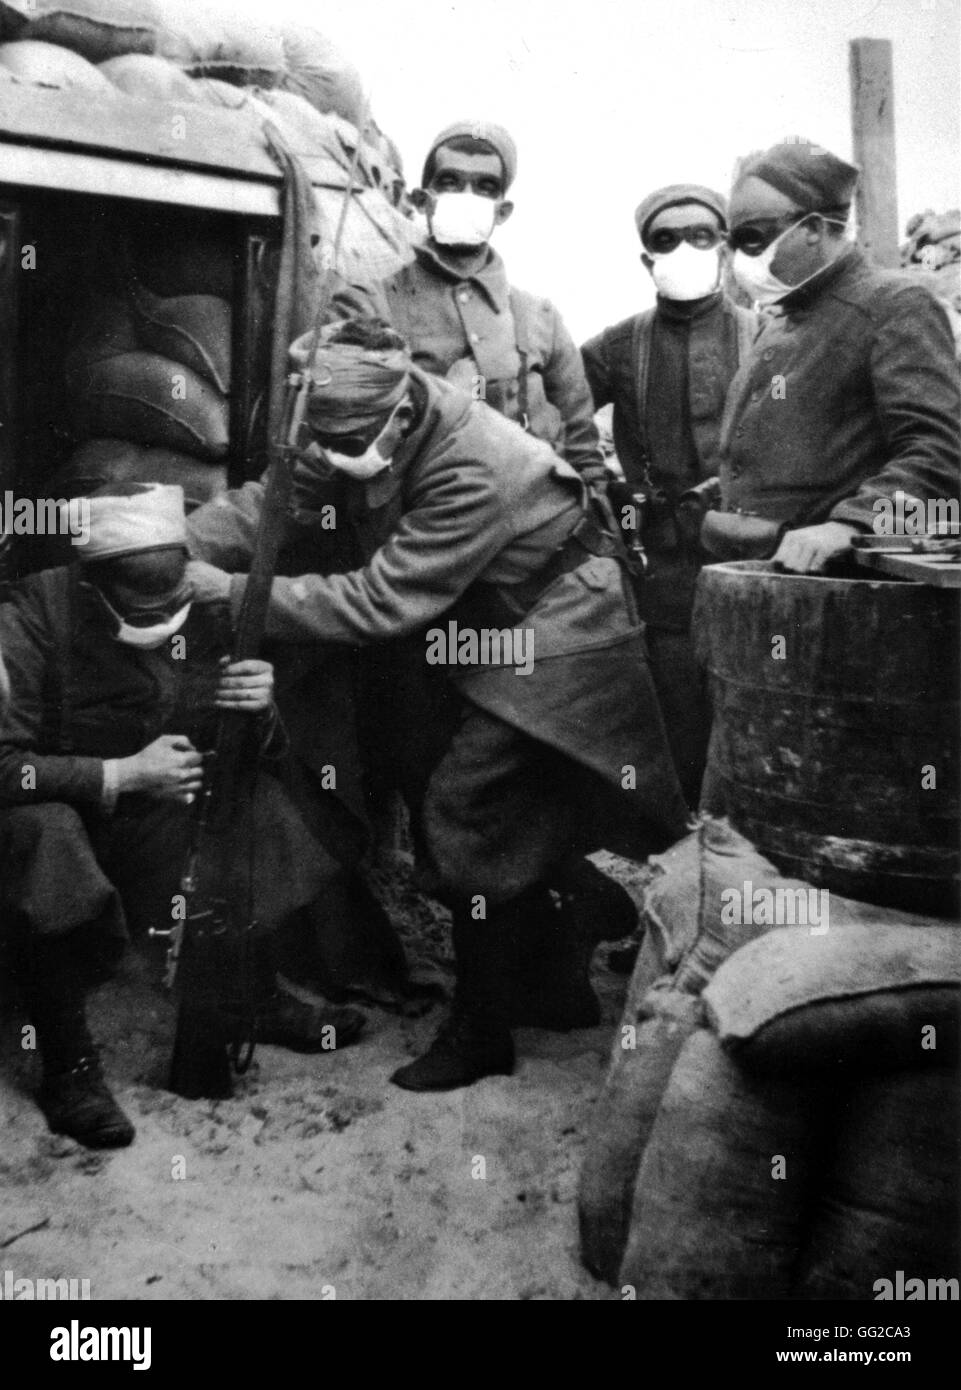 In a French trench at Nieuport. Zouaves equipped with masks against poison gases Juin 1915 France - World War I - Stock Image